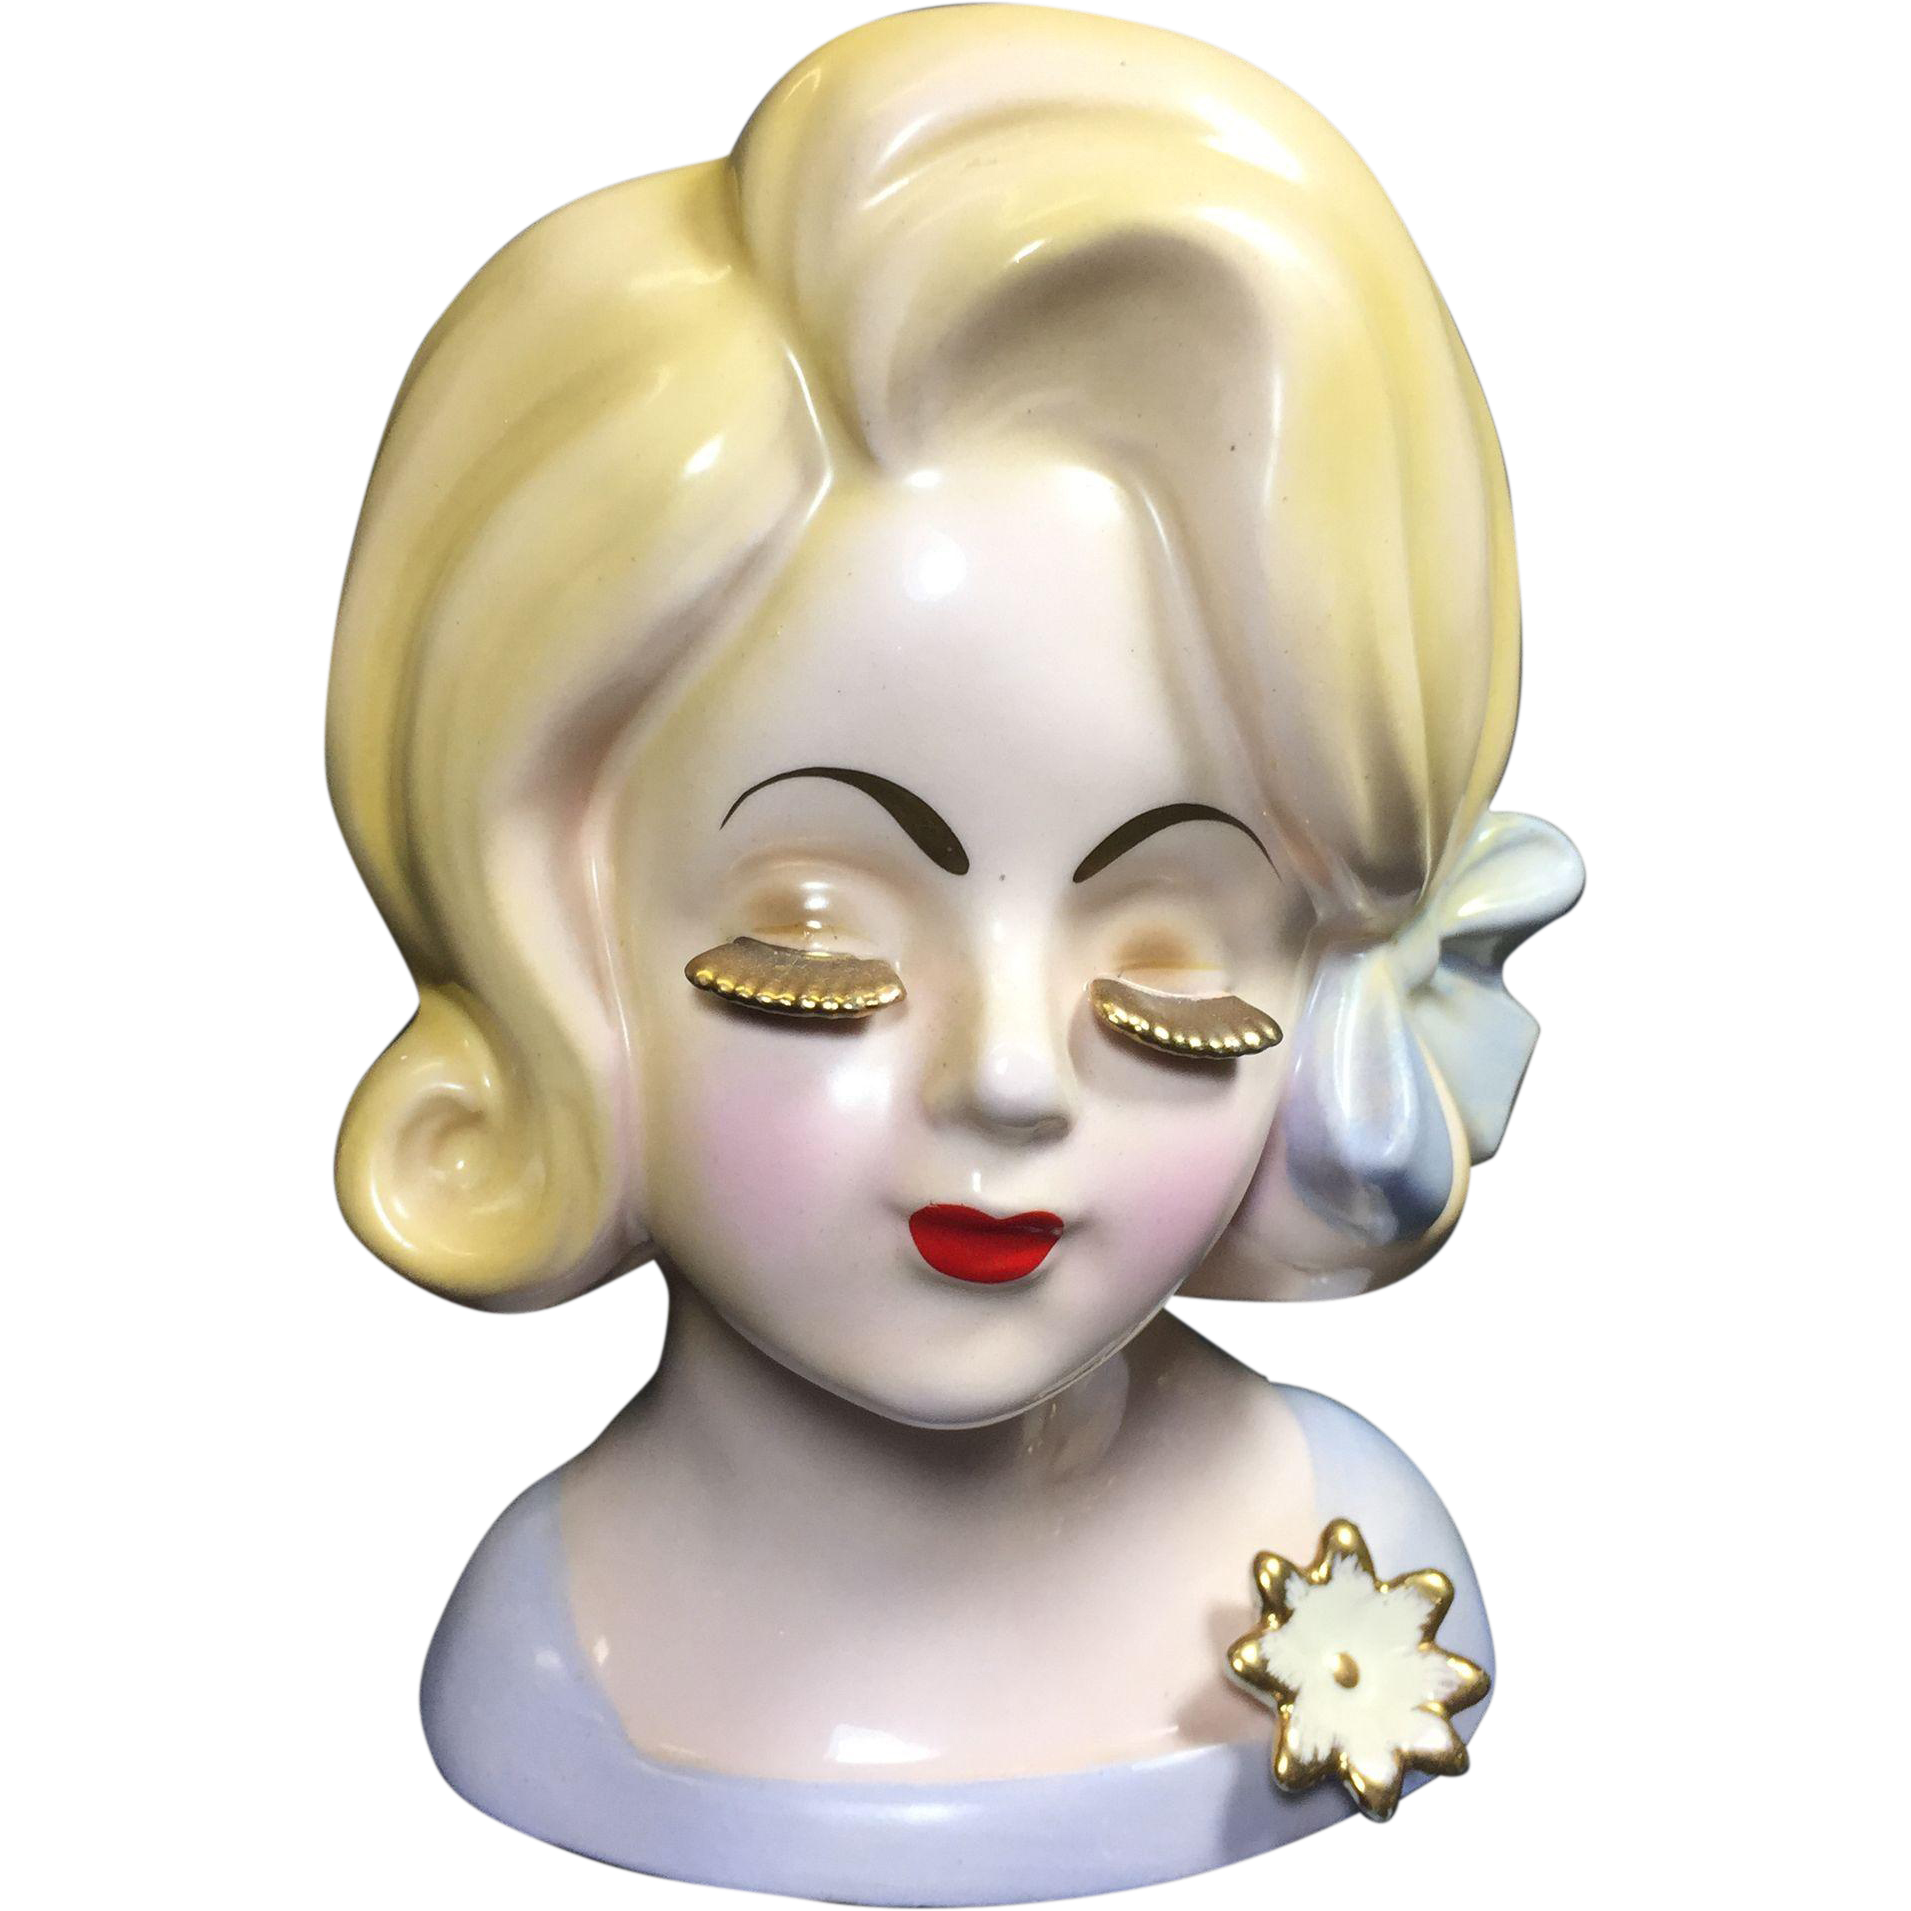 Sweet Lady Head Vase w Gold Lashes & Pale Blonde Hair & Skin